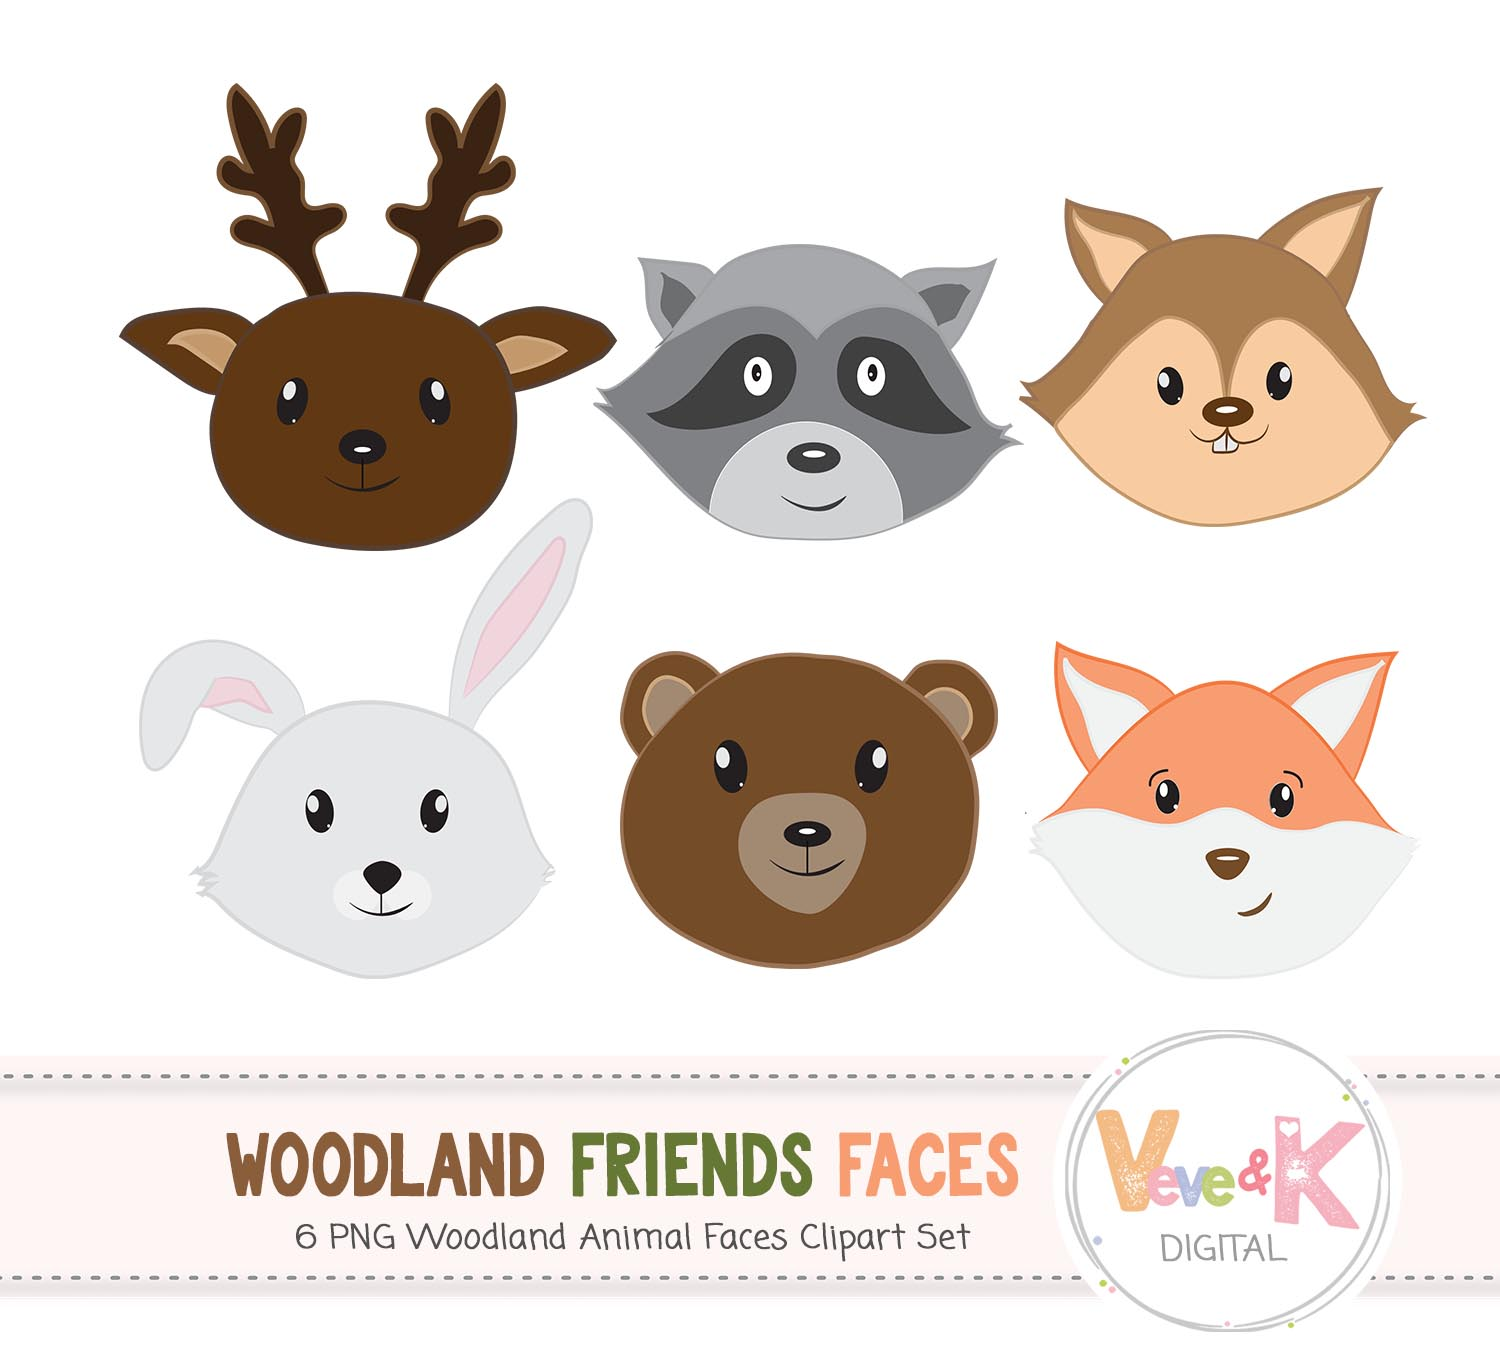 Forest faces woodland fox. Animals clipart deer